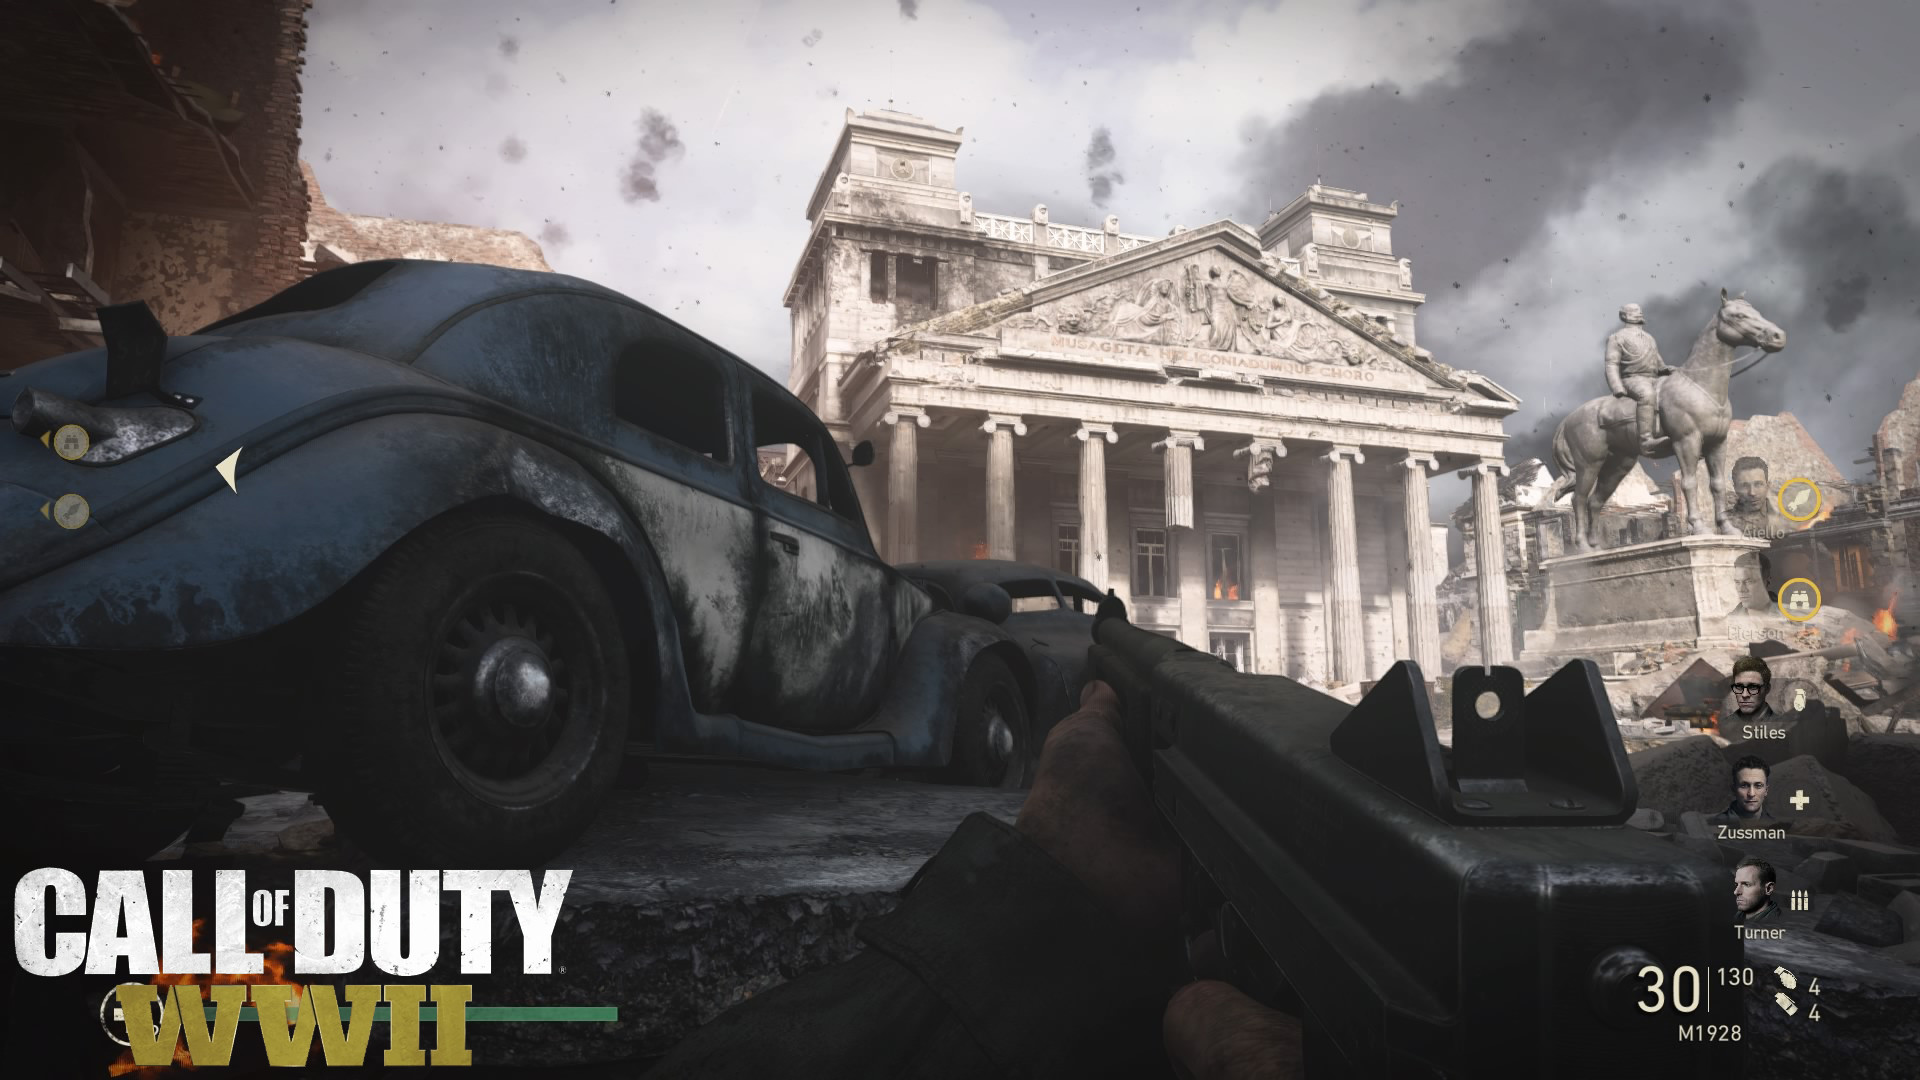 Call Of Duty Ww2 Hd Wallpaper Posted By Ethan Anderson